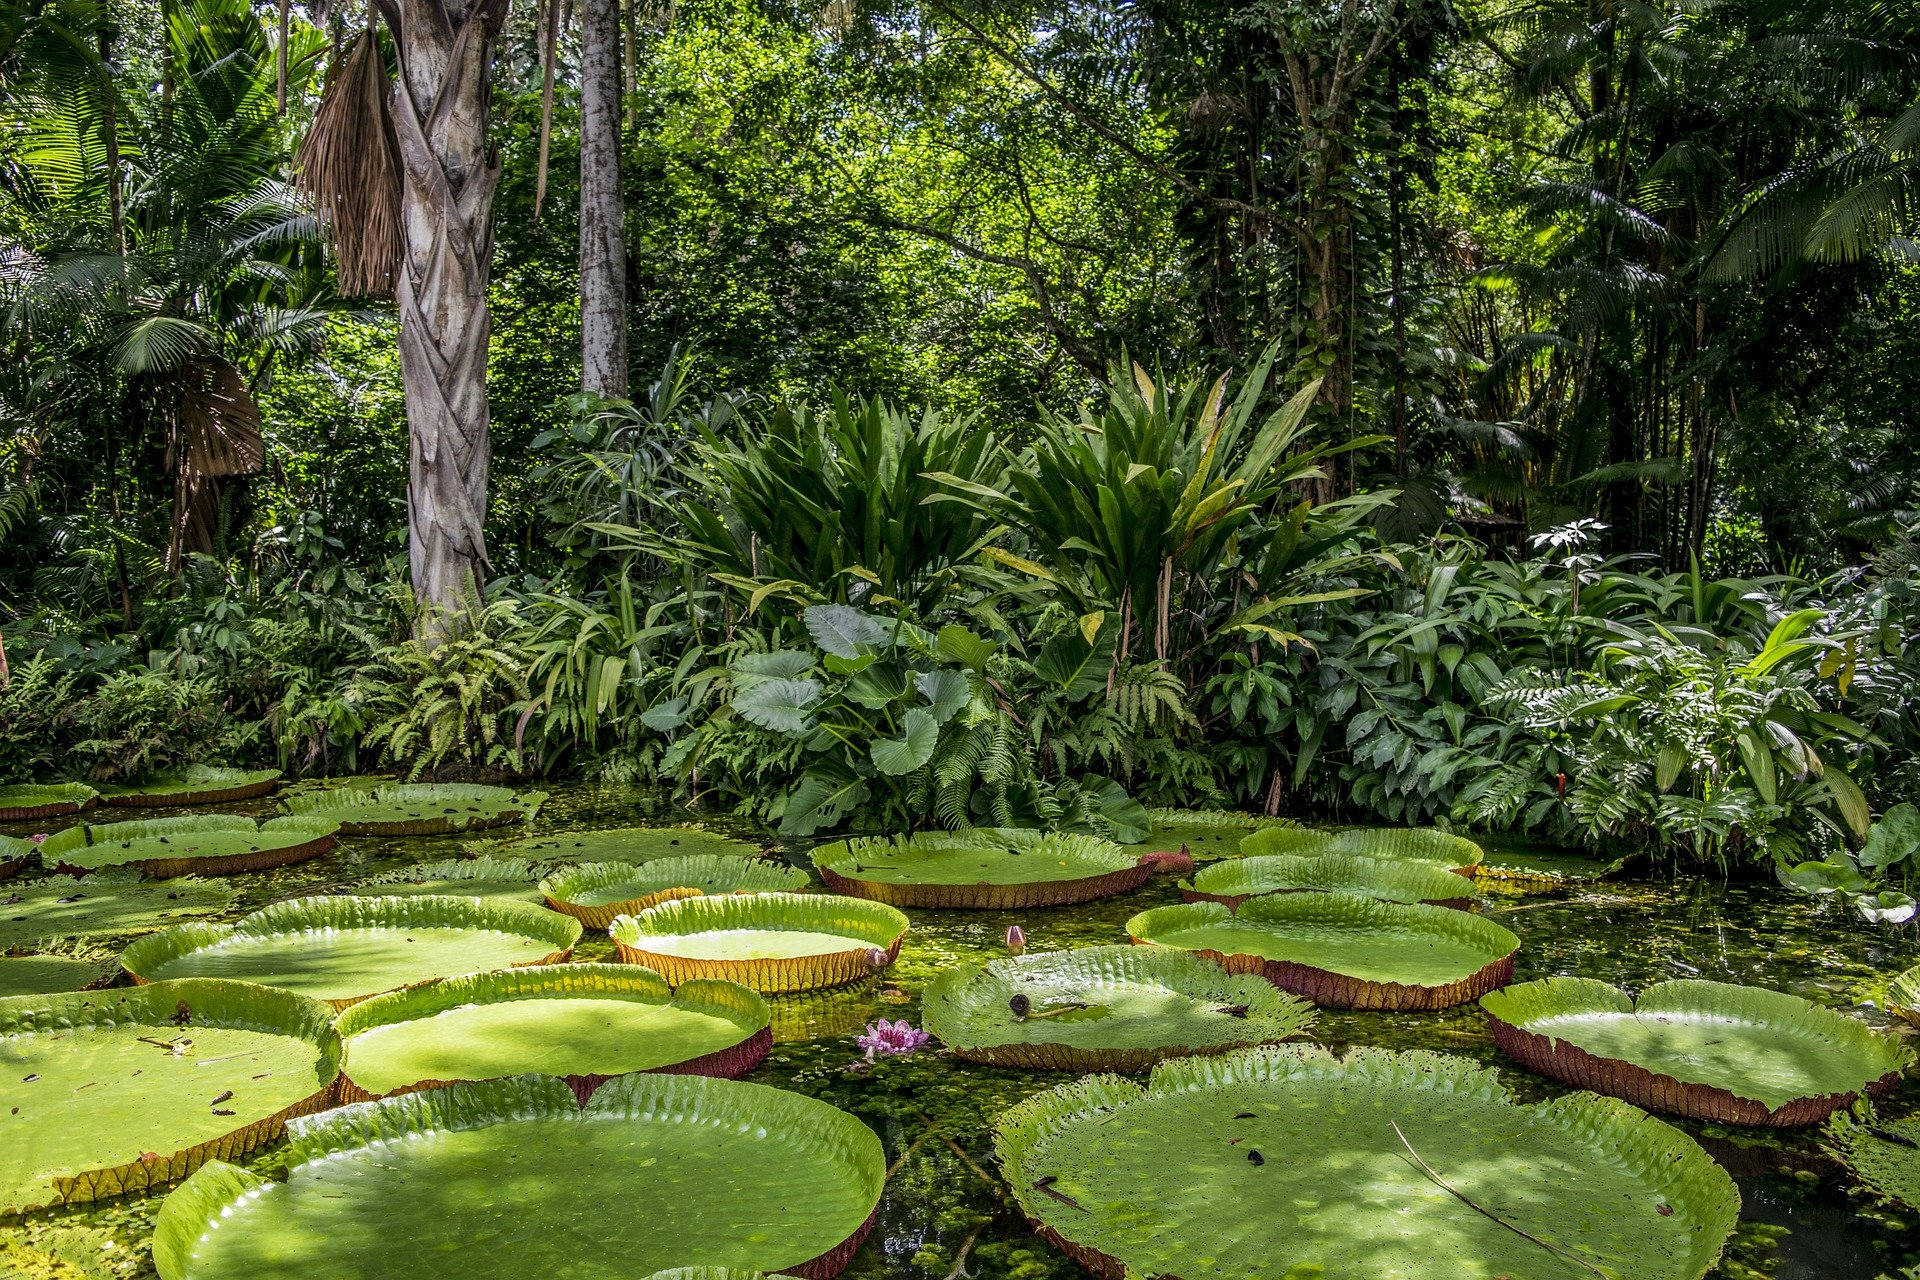 Lily pads in the Amazon Rainforest